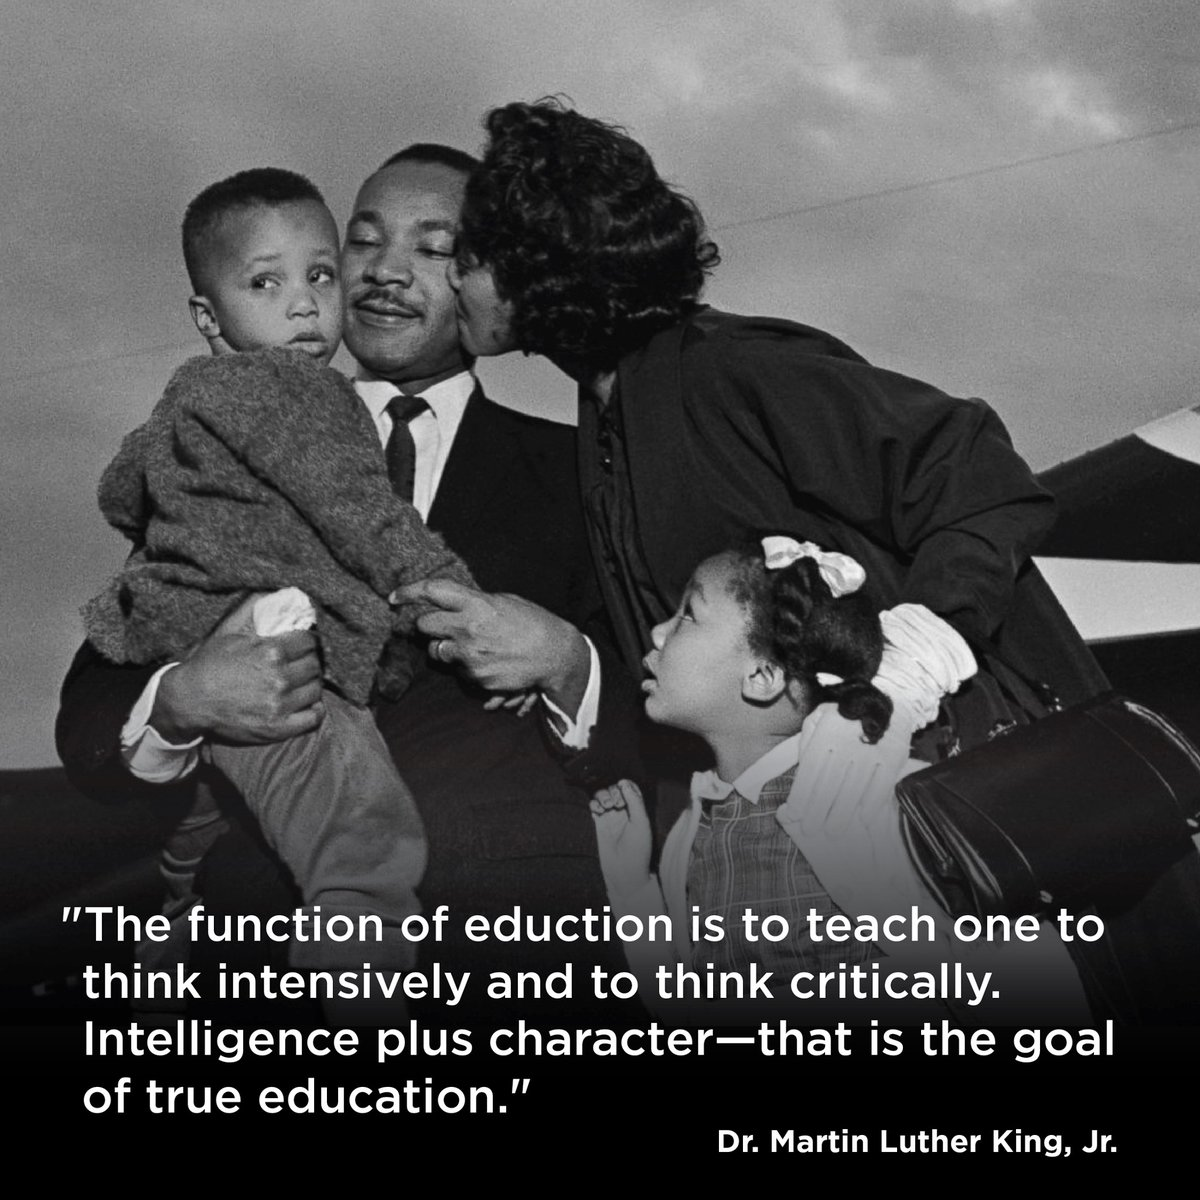 Reminder that classes will not be in session and meal distribution will be paused tomorrow, Mon, 1/18 in observance of #MartinLutherKingJr Day.